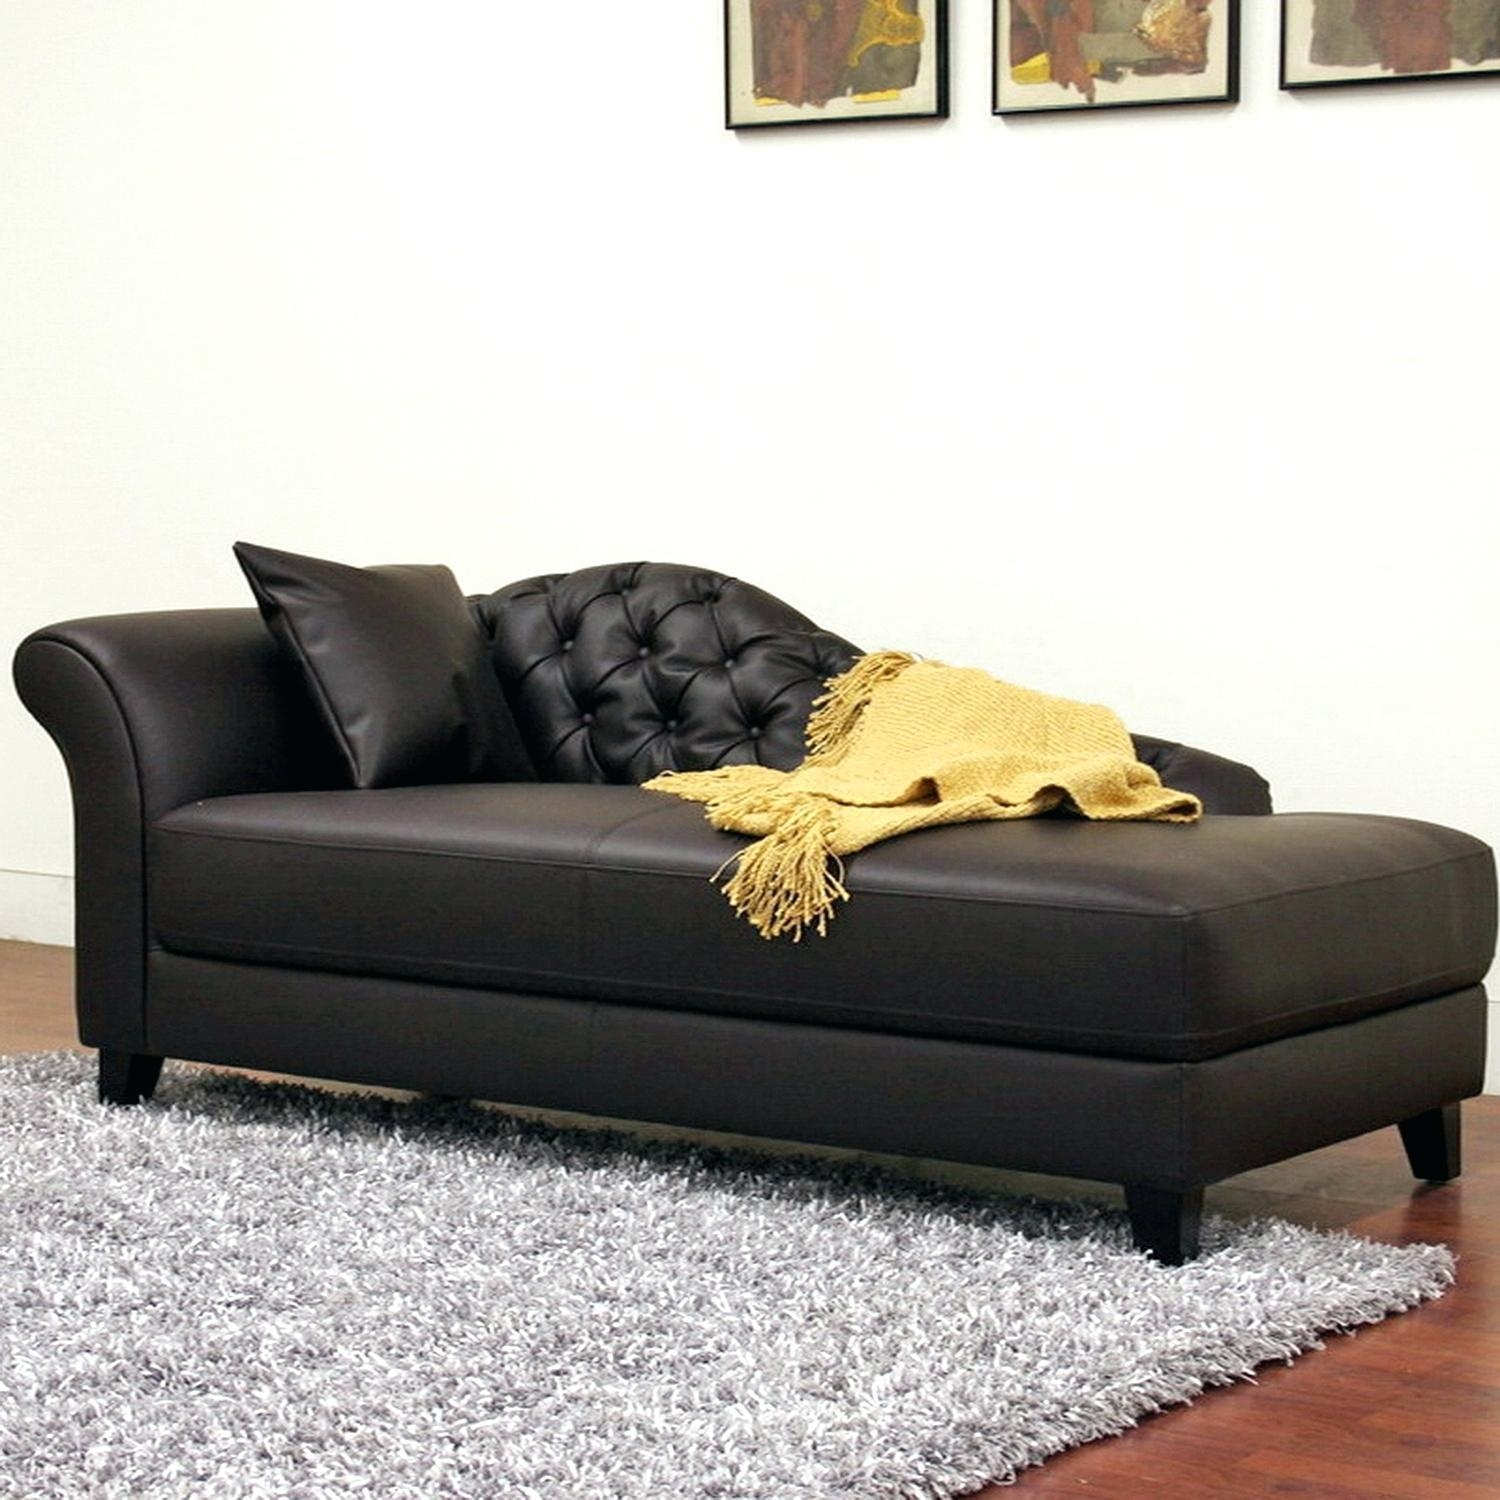 Arhaus Leather Sofa Living Room Black Chaise Lounge With Curving Throughout Arhaus Leather Sofas (Image 11 of 20)